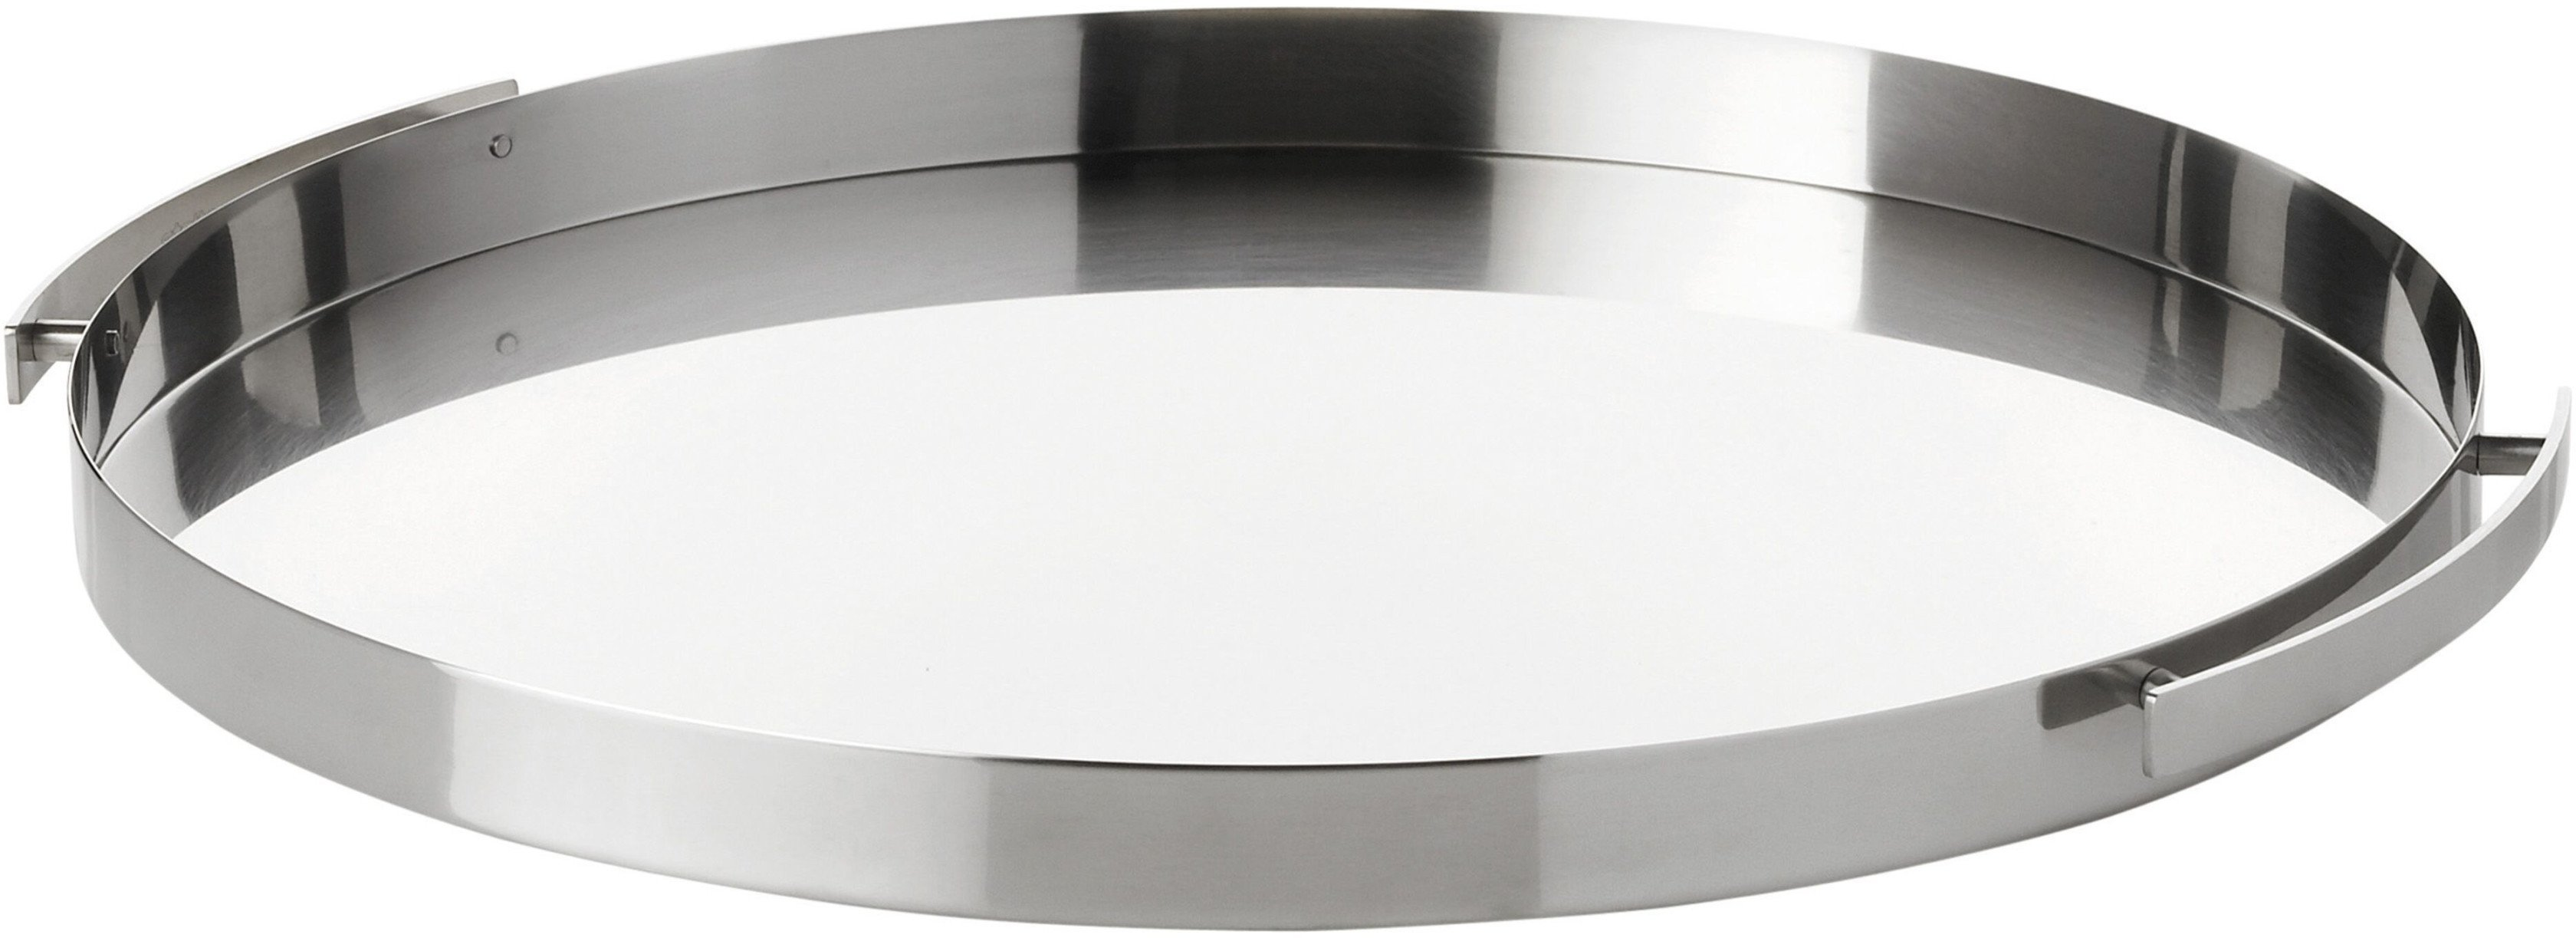 Cylinda-line Serving Tray by A. Jacobsen for Stelton